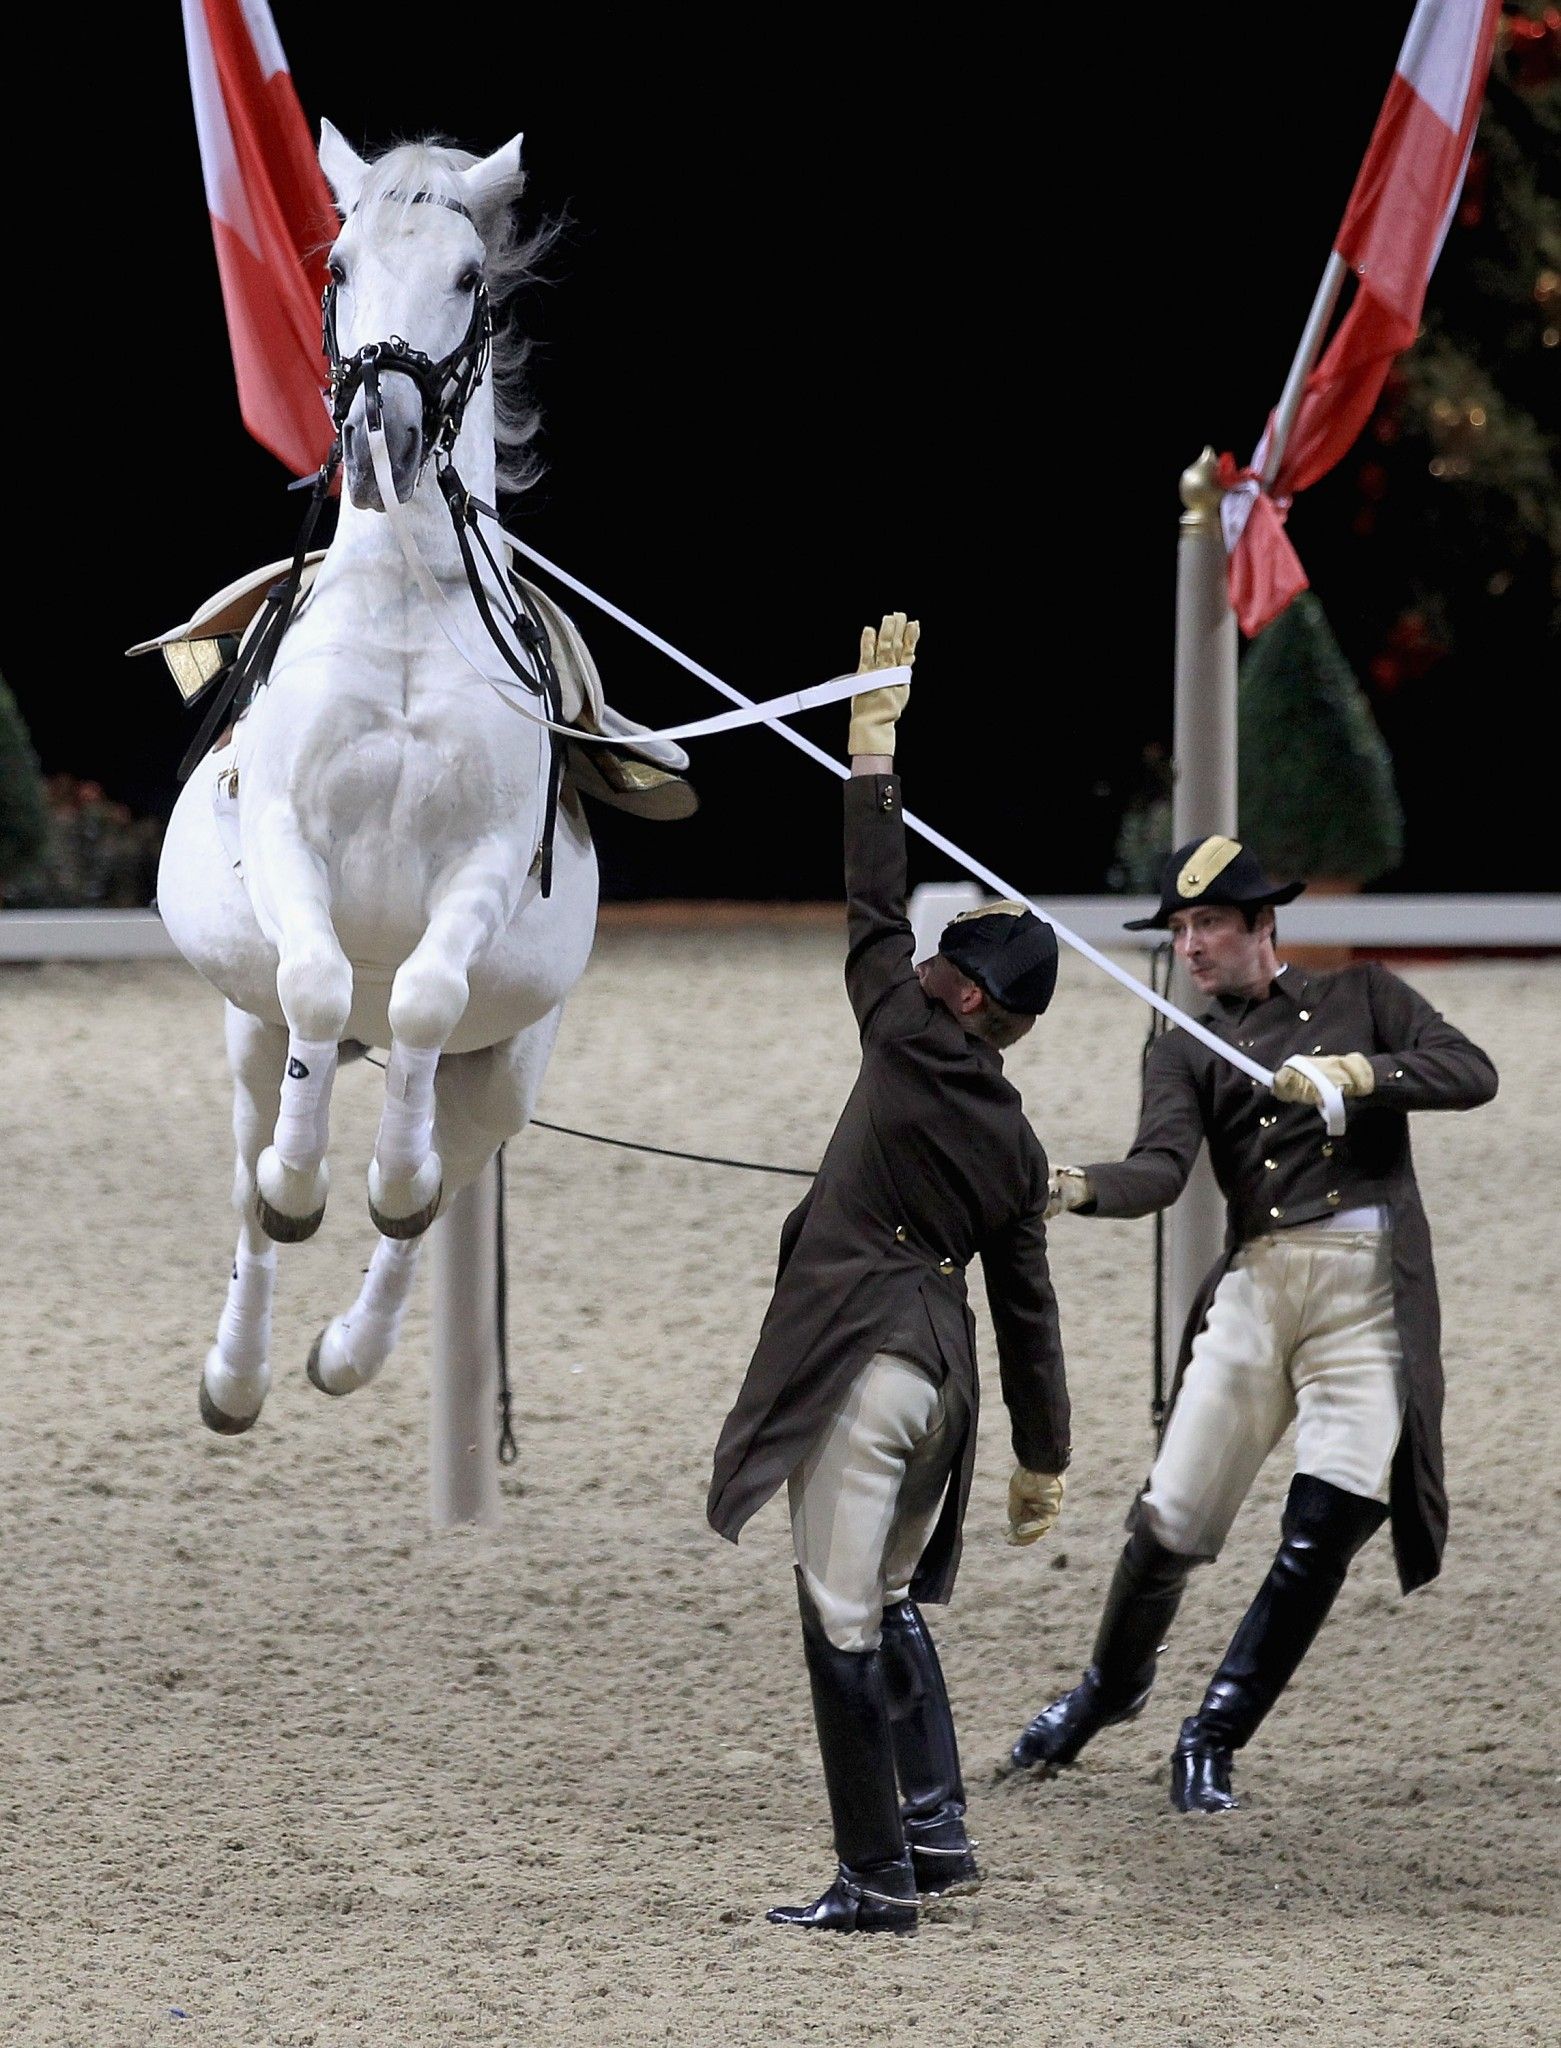 spanish riding school - The Spanish Riding School of Vienna Announces 450th Anniversary Tour